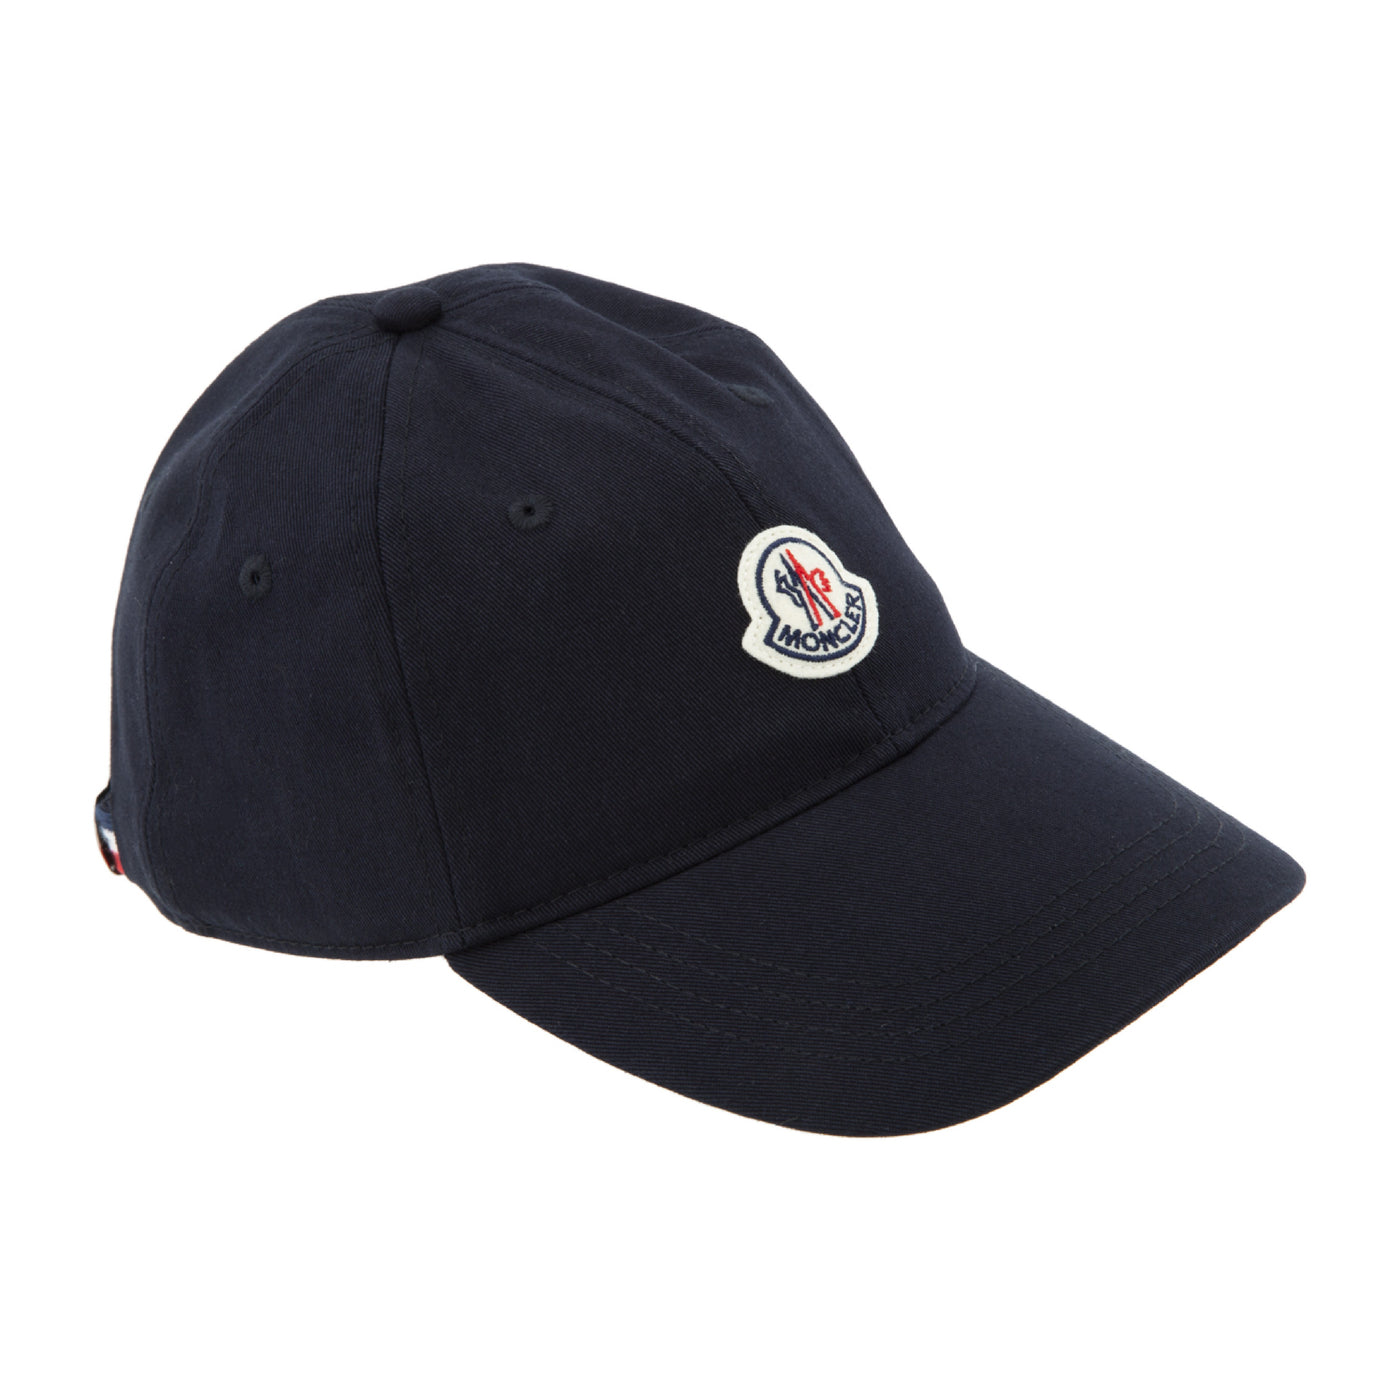 Load image into Gallery viewer, MONCLER BERRETTO BASEBALL CAP BLUE